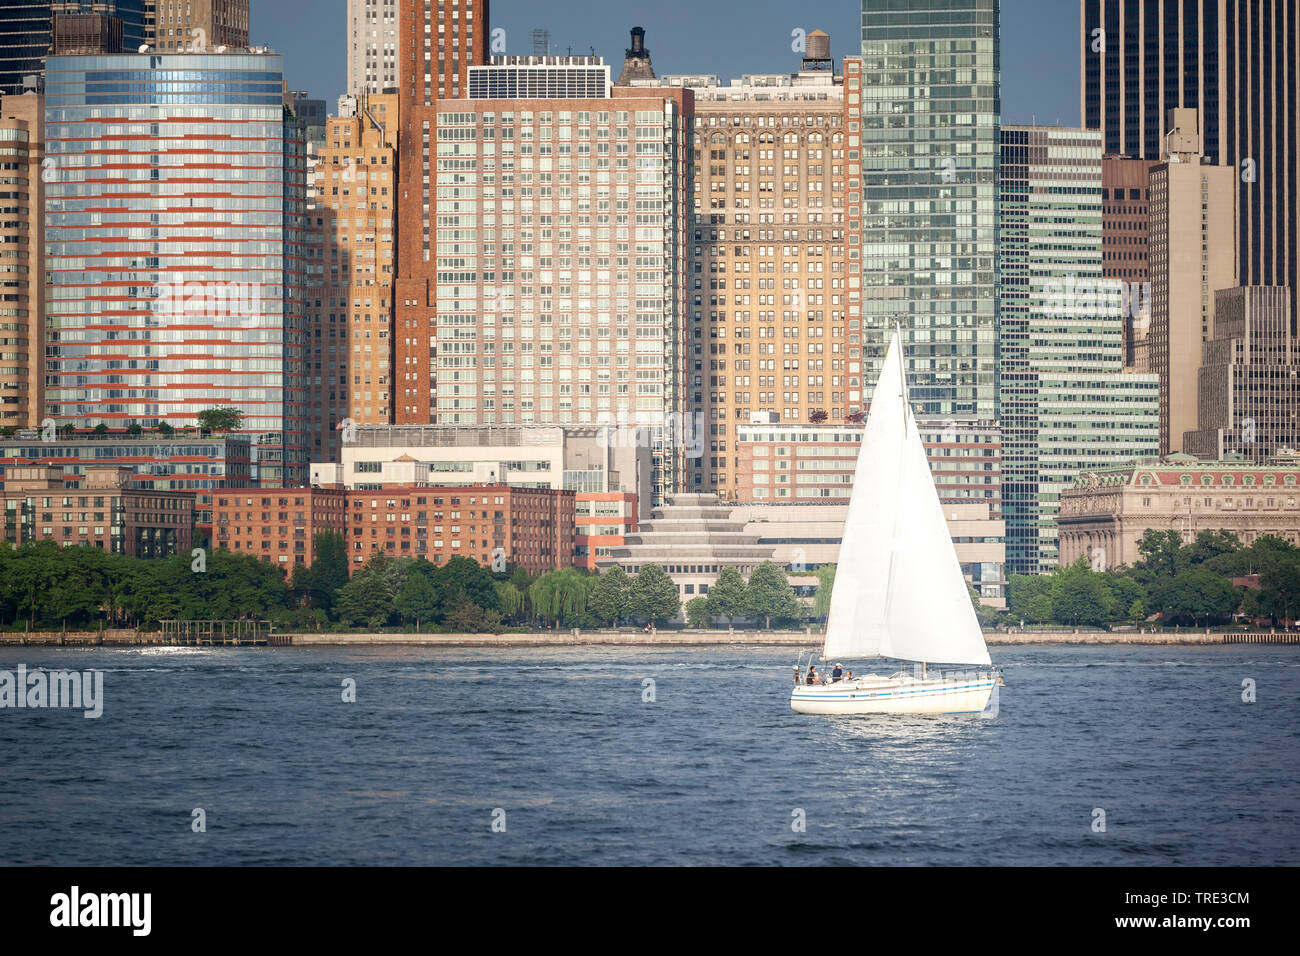 Segelboot vor New York, USA, USA, New York (Bundesstaat) | sailing boat in front of New York, USA, USA, New York (state) | BLWS516250.jpg [ (c) blickw - Stock Image